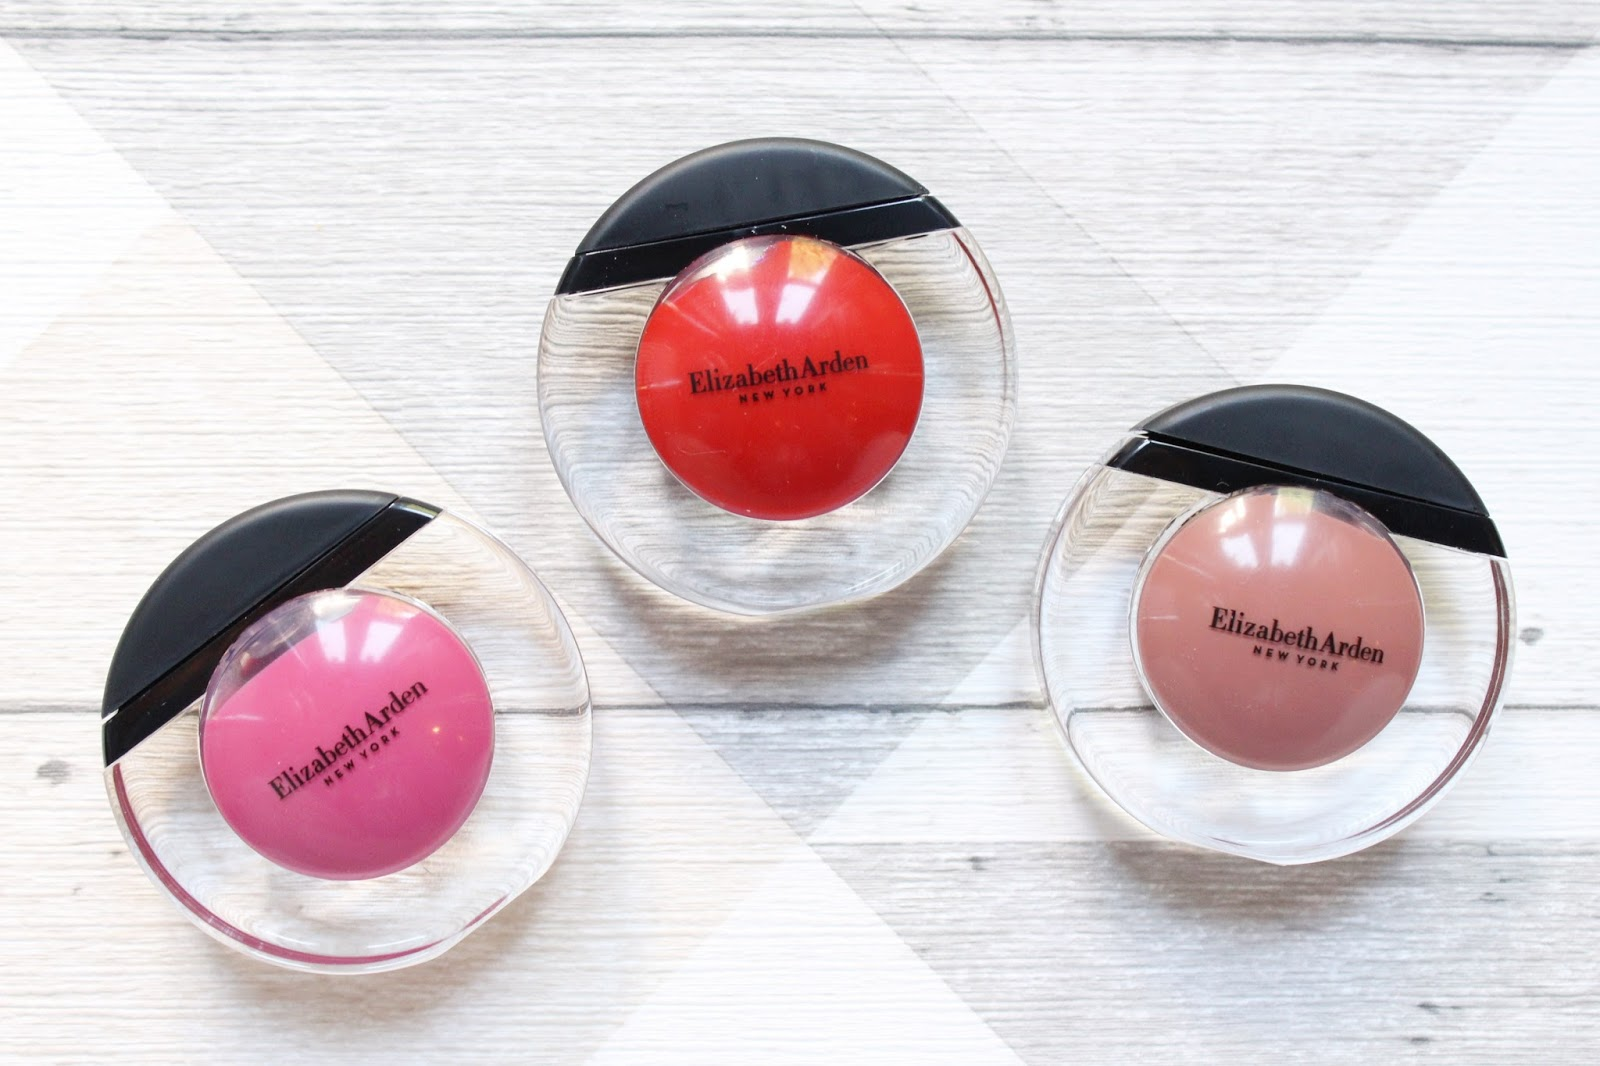 Elizabeth Arden Tropical Escape Collection